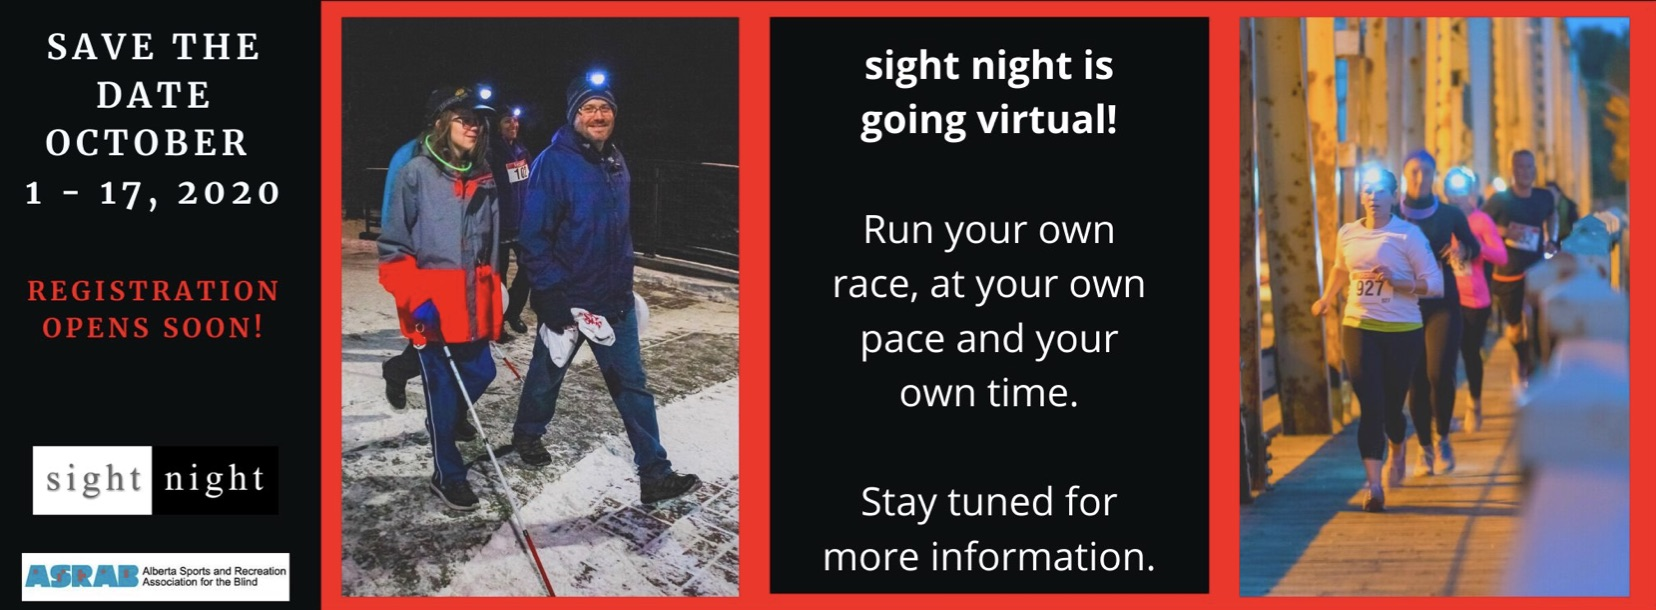 Sight Night 2020 Virtual Run and walk